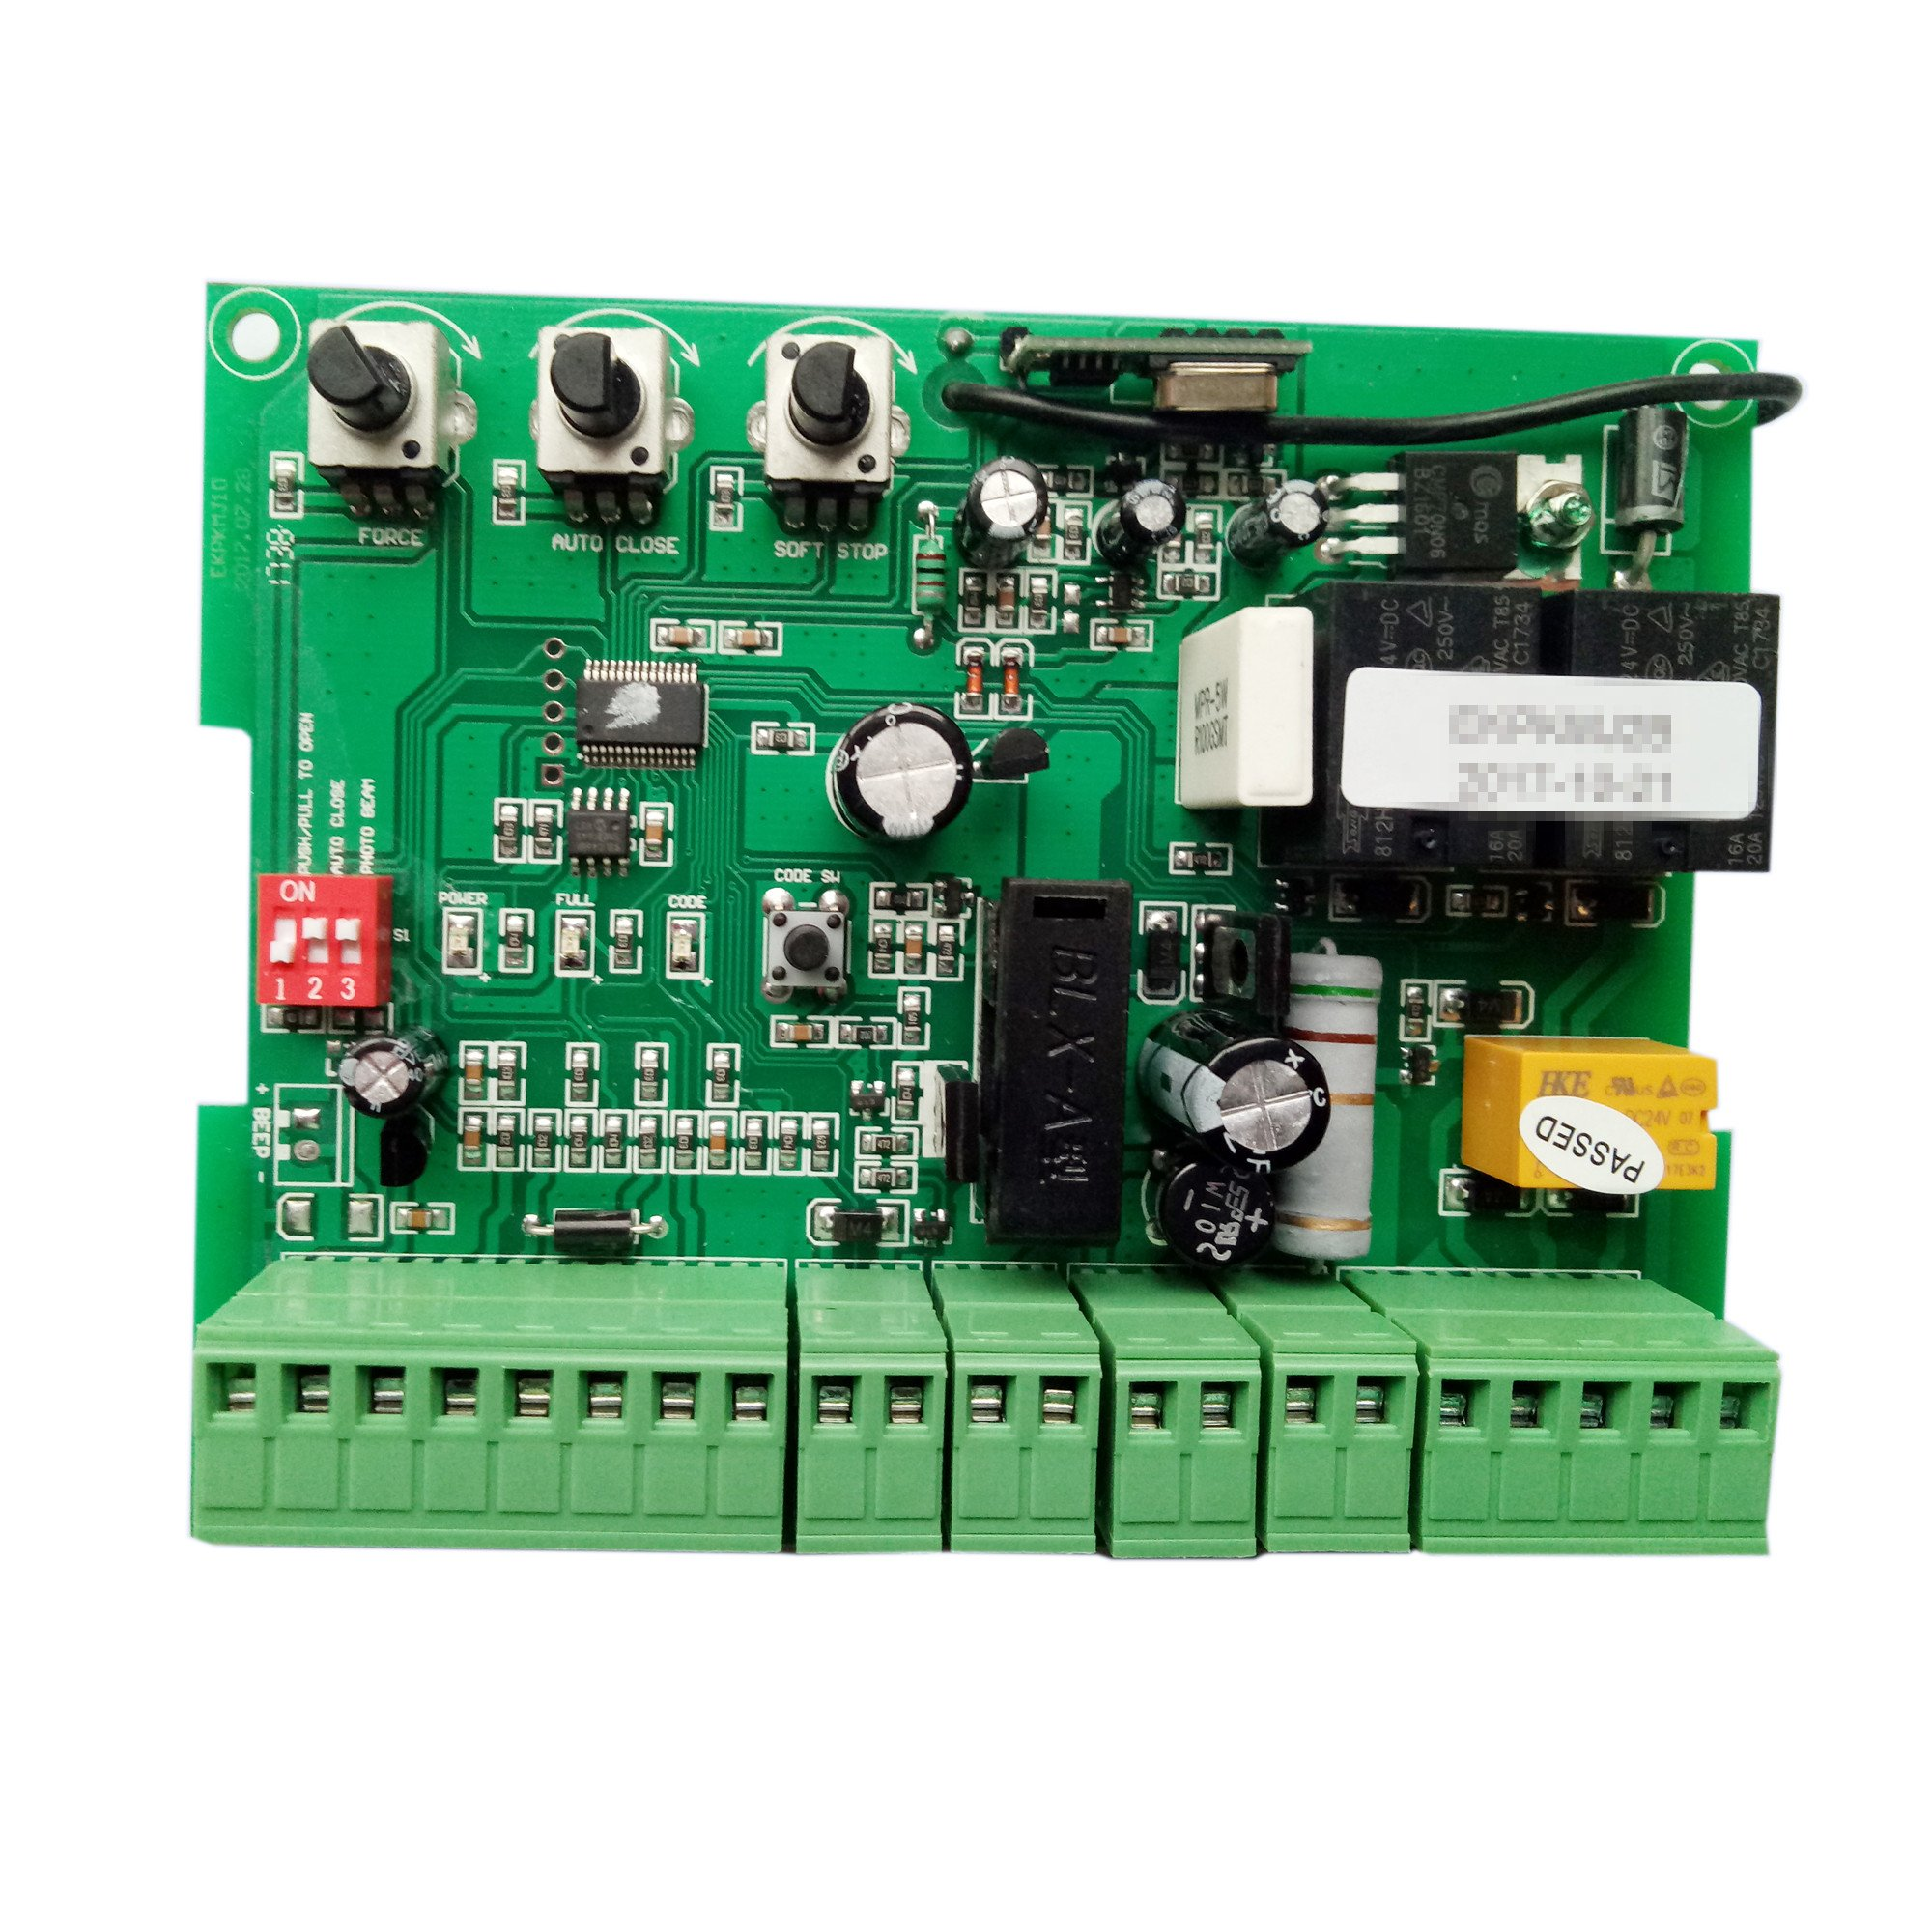 Cheap Pcb Circuit Find Deals On Line At Alibabacom Laser Cutting Machine For Pcba Printed Board Is A Special Get Quotations Topens A3pcb Print Control A3 Swing Gate Openers